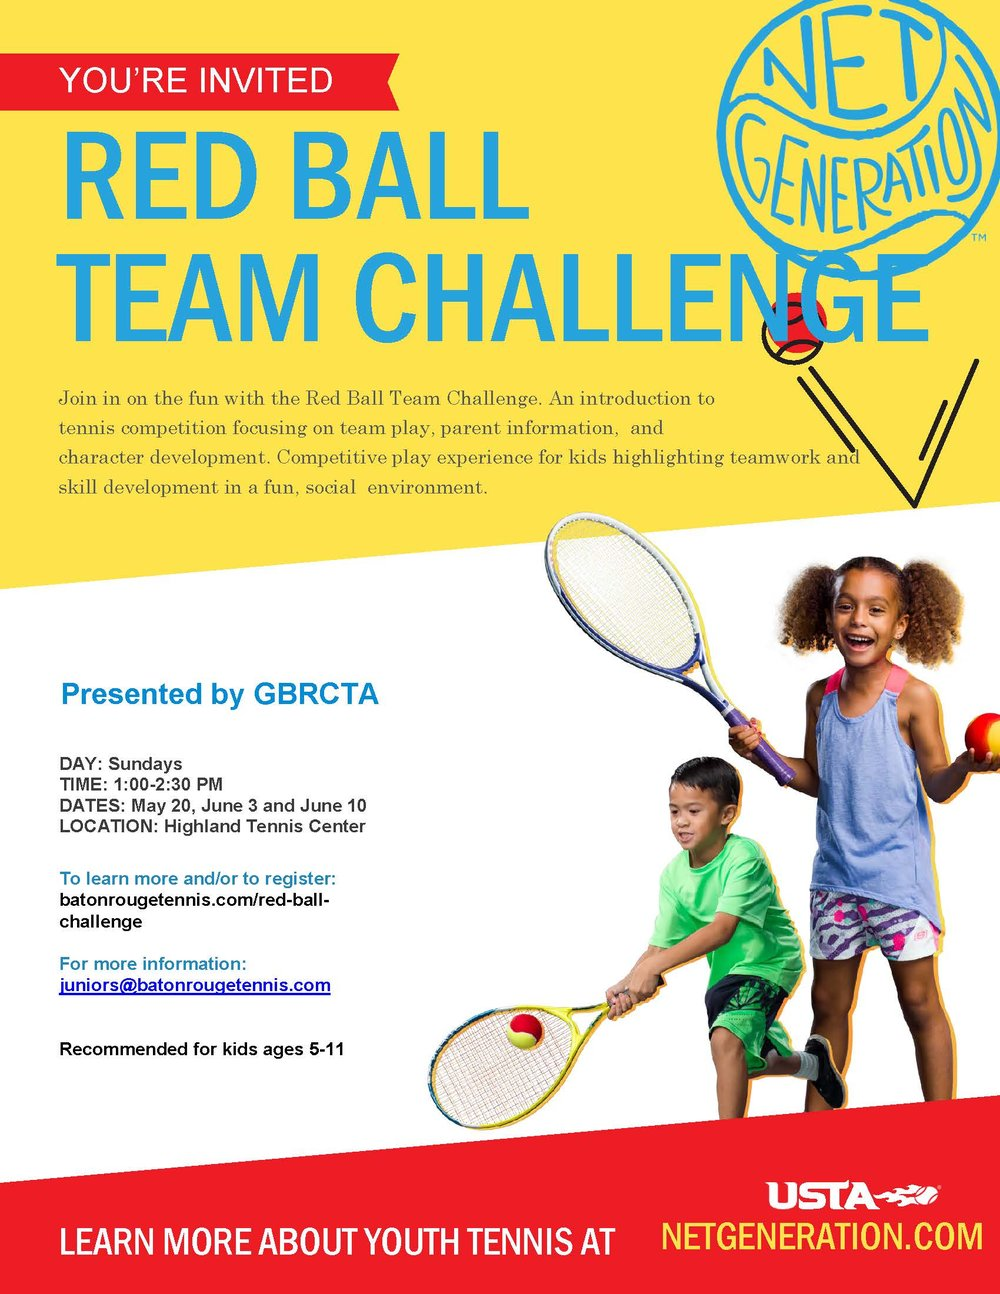 RED BALL TEAM CHALLENGE SERIES - LOCATION: Highland Tennis CenterDAY: SundaysDATES: May 20, June 3 and June 10(JUNE 10 EVENT HAS BEEN CANCELLED)TIME: 1:00-2:30 PMBALL/COURT: Red/Youth Court